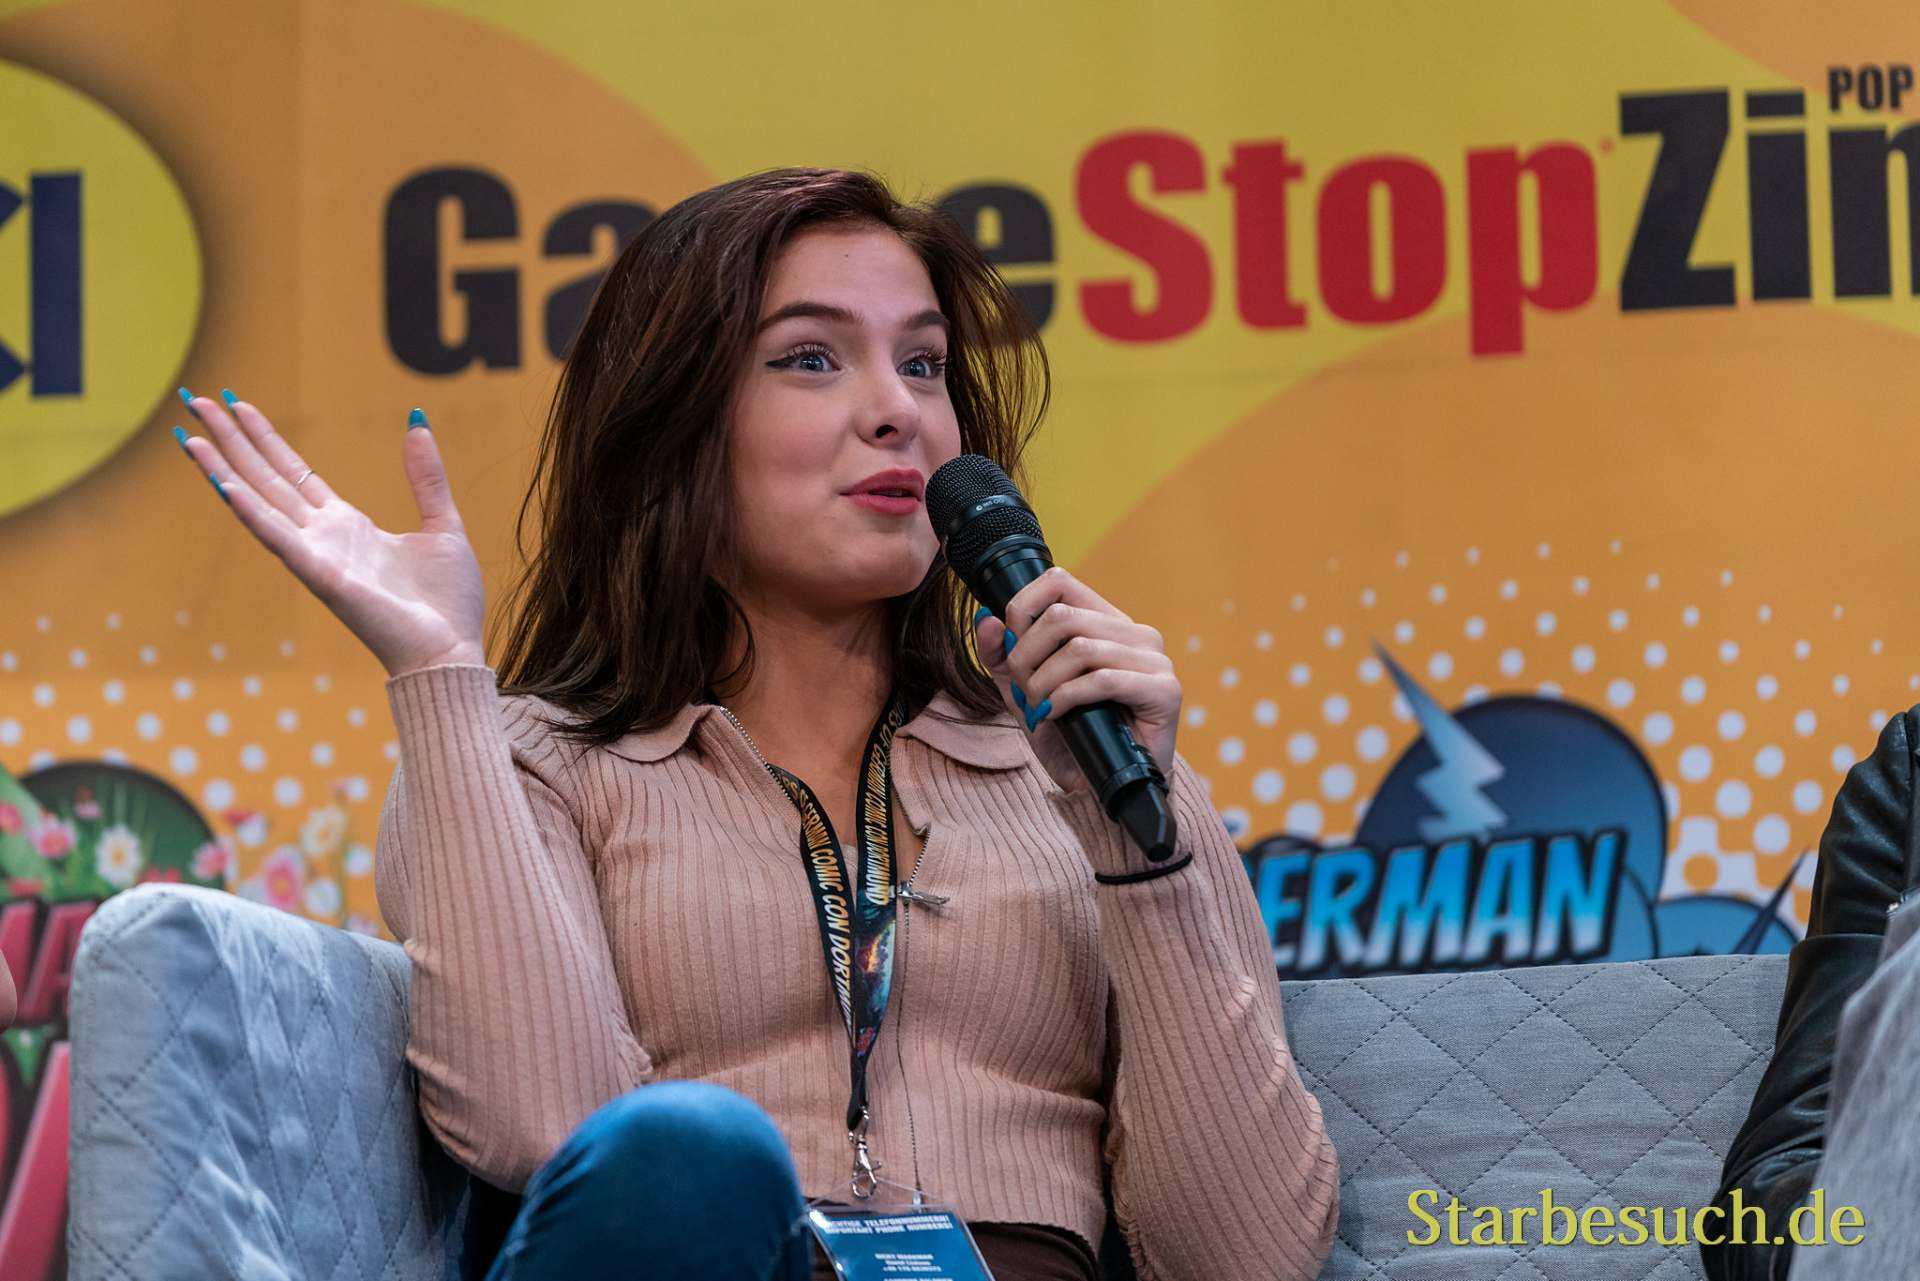 DORTMUND, GERMANY - December 7th 2019: Brighton Sharbino at German Comic Con Dortmund